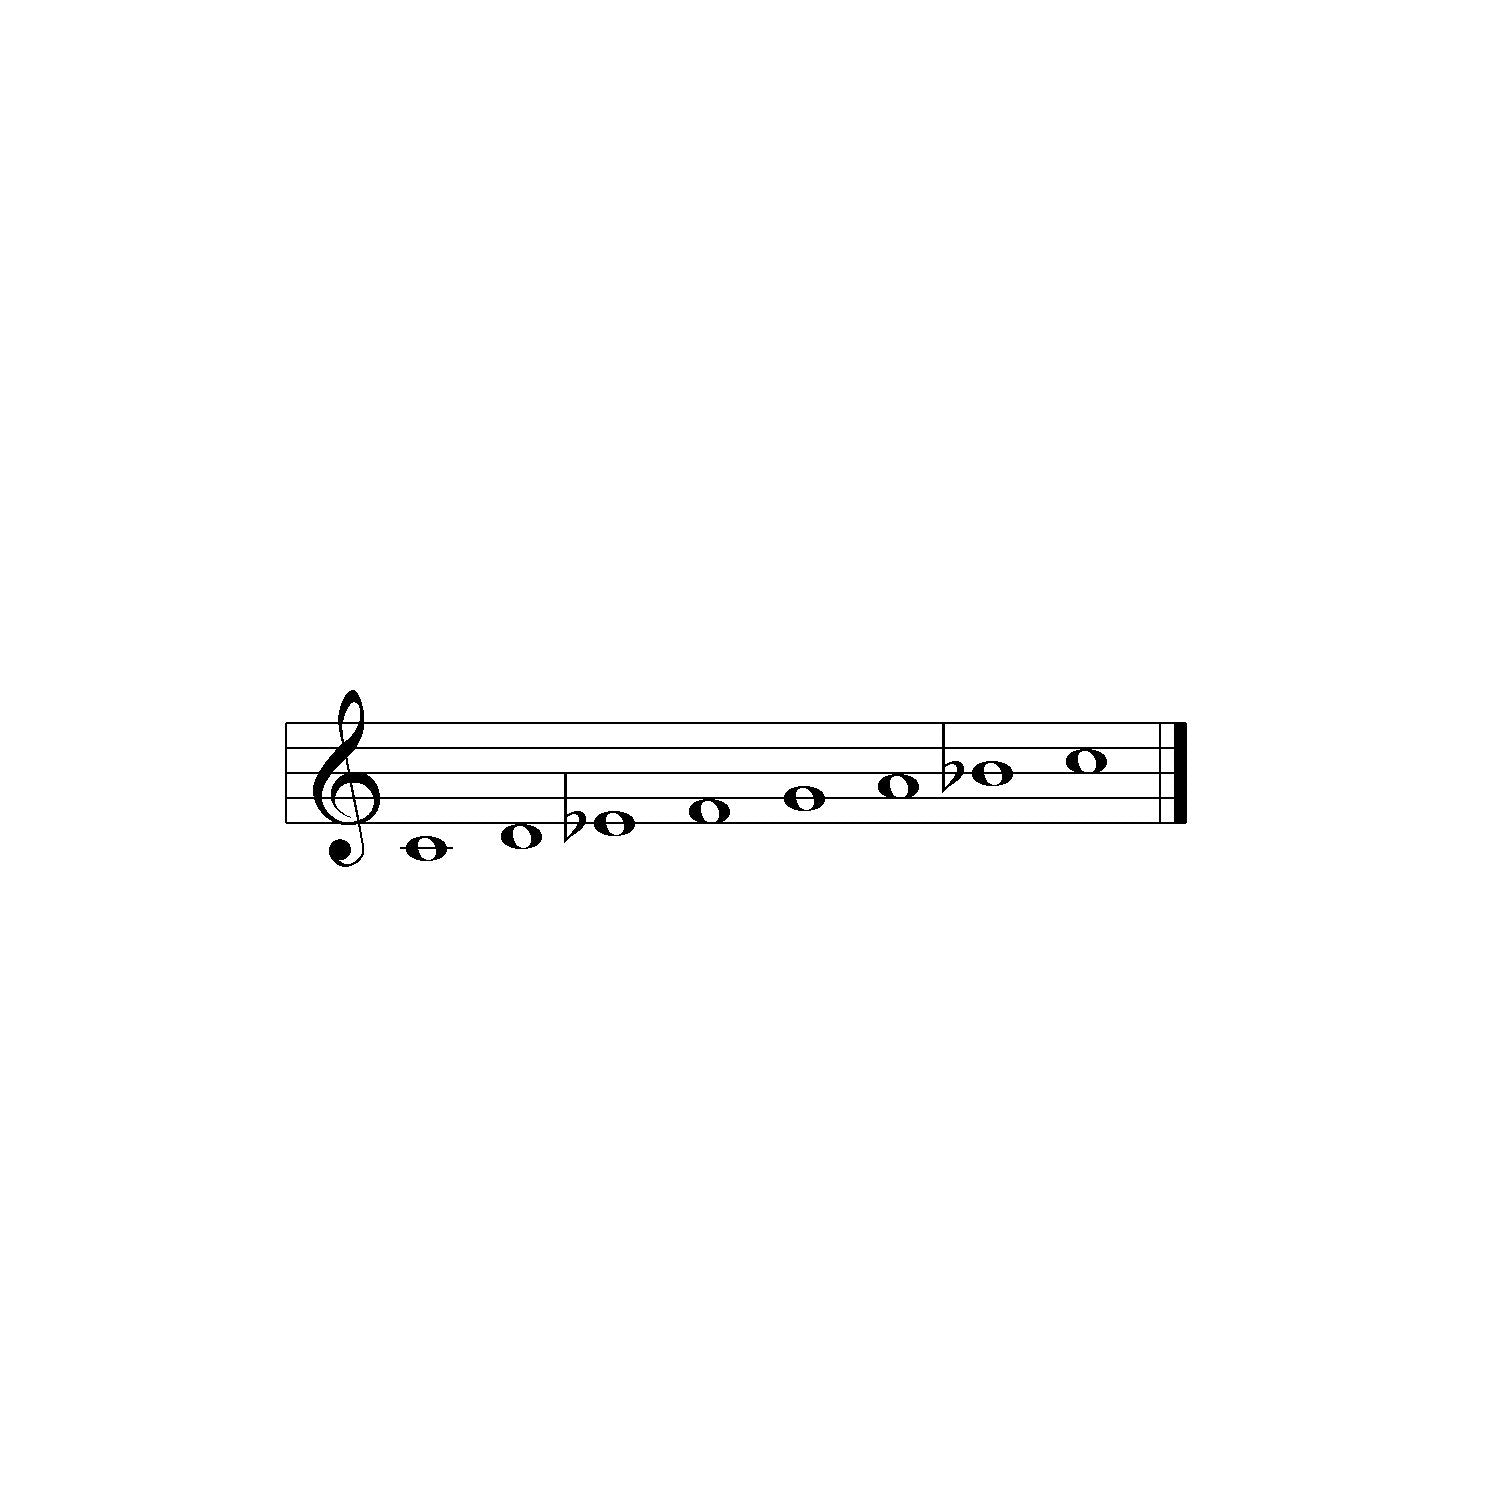 French Quarter Chime musical scale